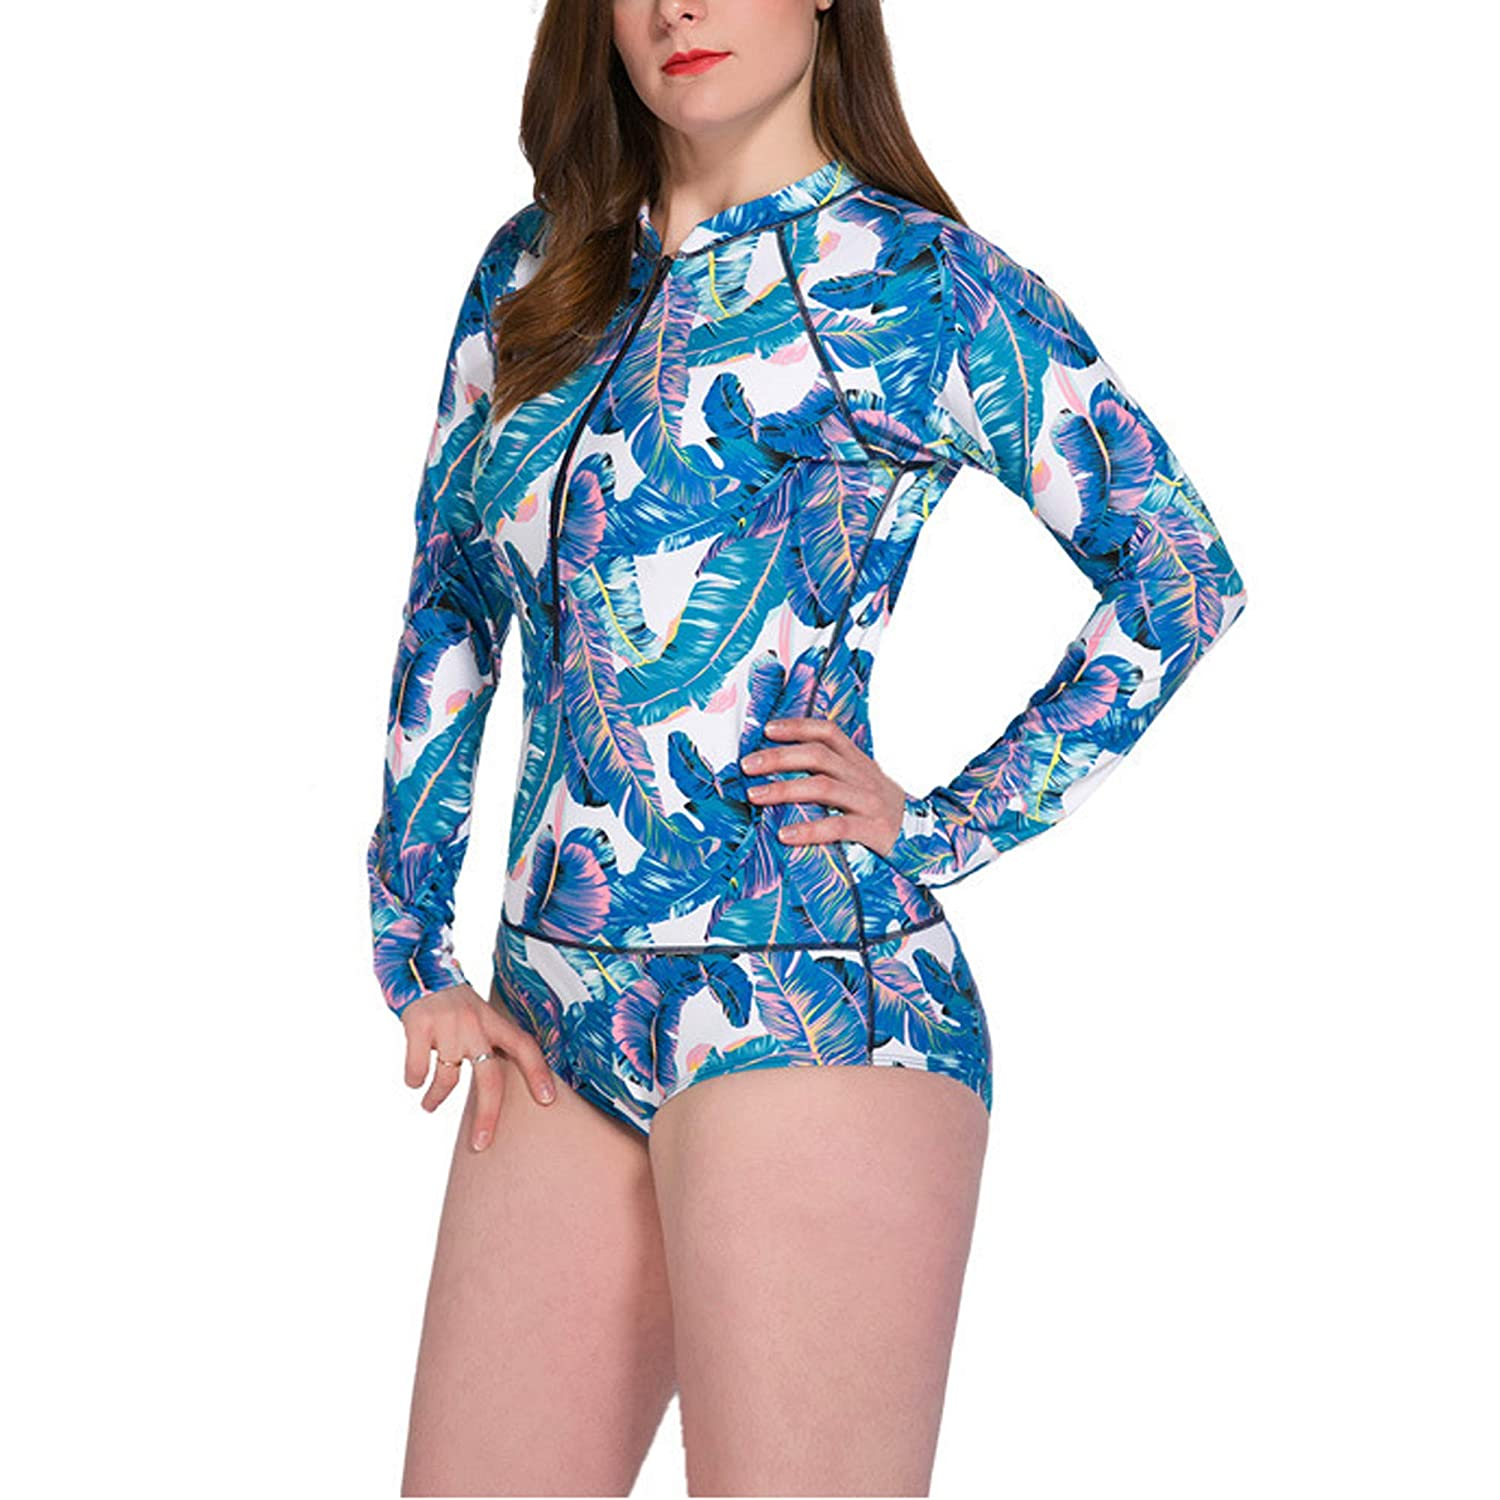 bluee BLOOMMY One Piece Swimsuits for Women, UV Predection Long Sleeve Rashguard for Women Plus Size